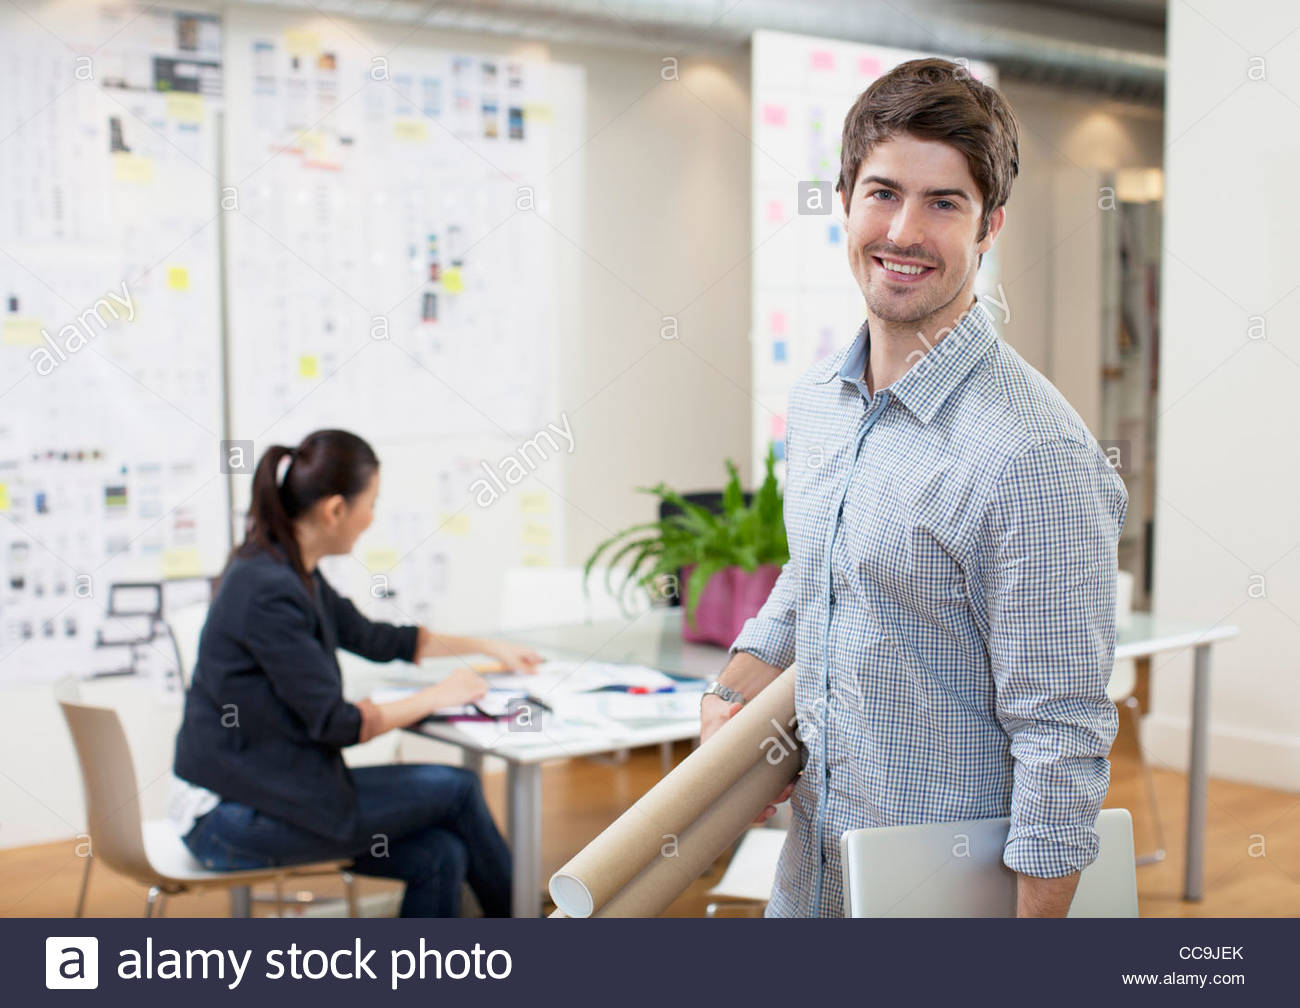 Portrait of smiling architect holding blueprint tubes in office portrait of smiling architect holding blueprint tubes in office malvernweather Image collections